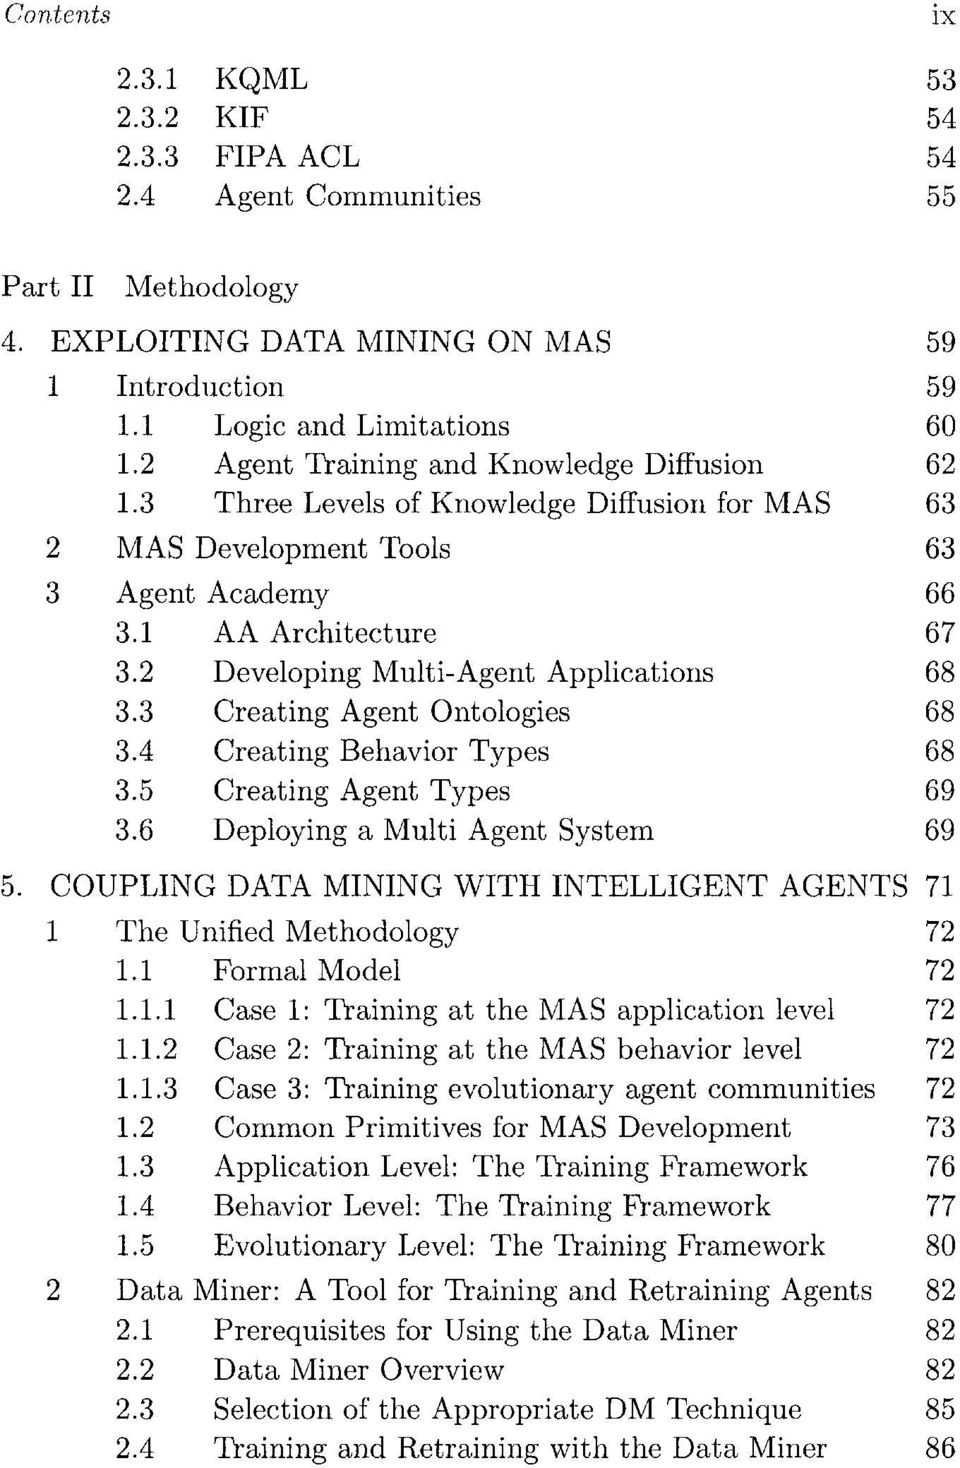 2 Developing Multi-Agent Applications 68 3.3 Creating Agent Ontologies 68 3.4 Creating Behavior Types 68 3.5 Creating Agent Types 69 3.6 Deploying a Multi Agent System 69 5.